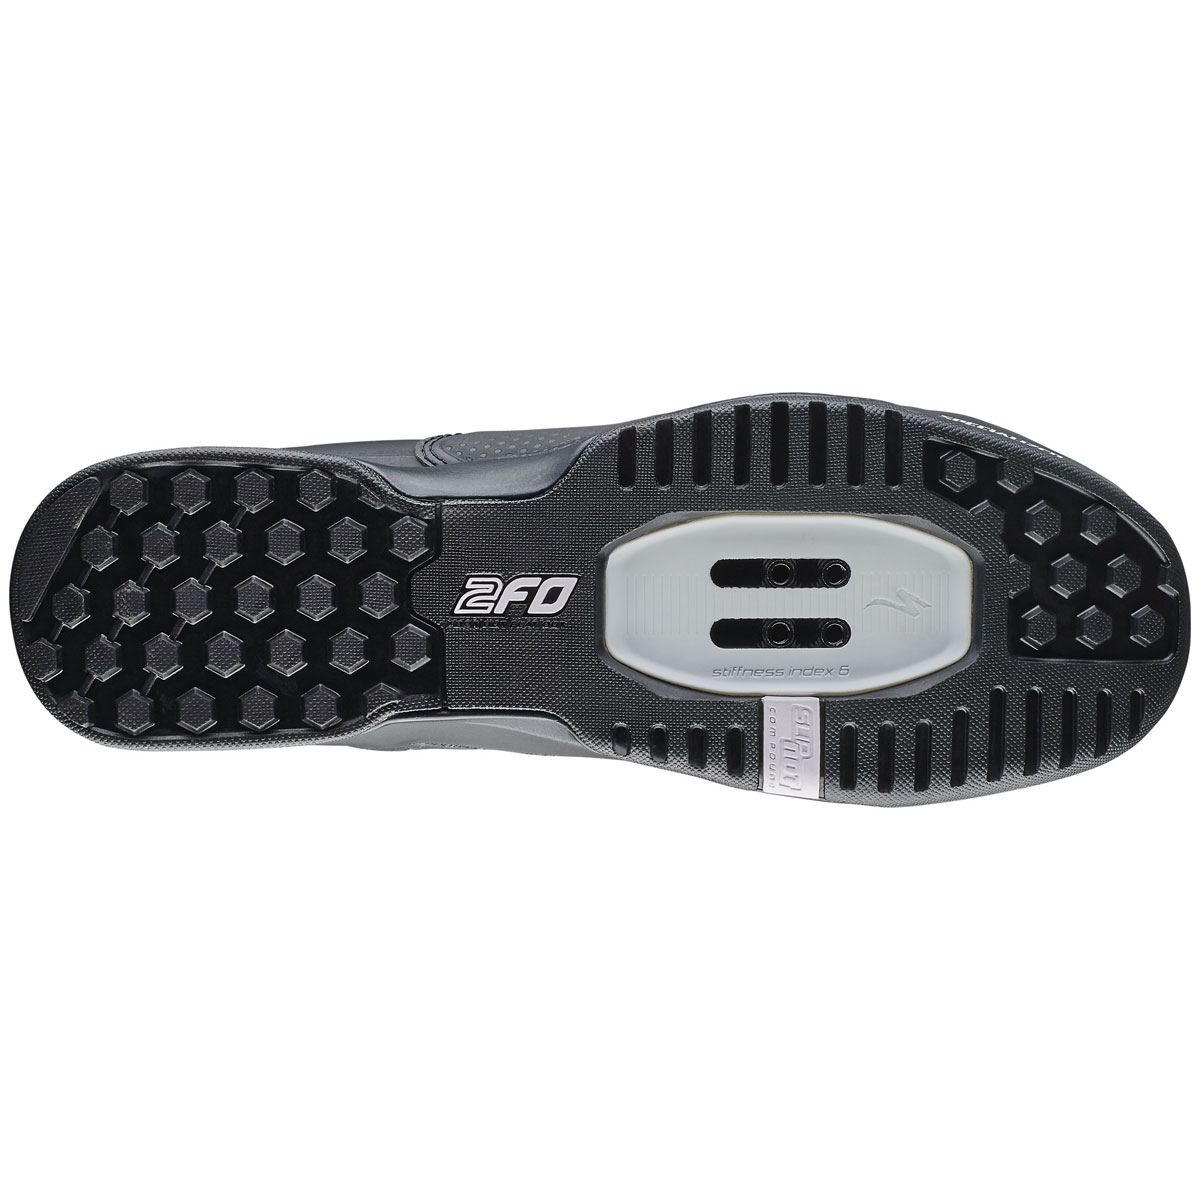 CHAUSSURES SPECIALIZED 2FO CLIPLITE MTB